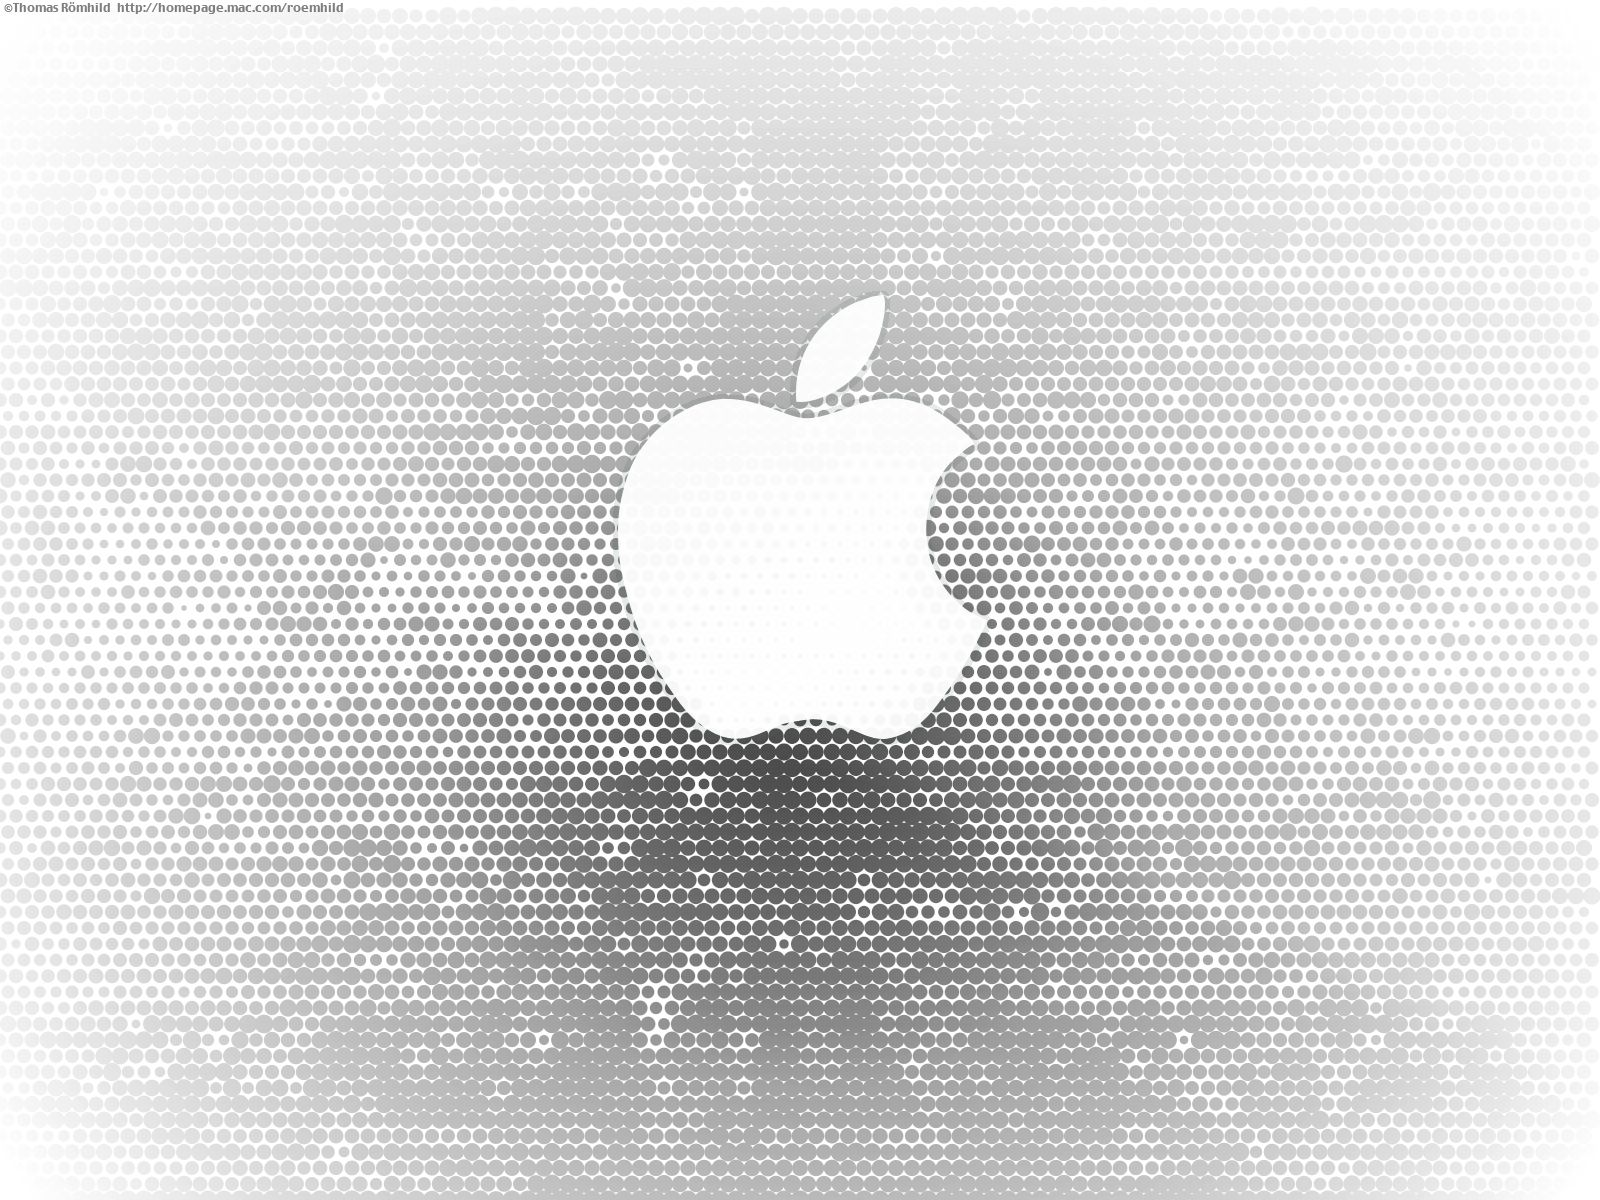 White_Apple_logo_with_dots_by_ScreenTom